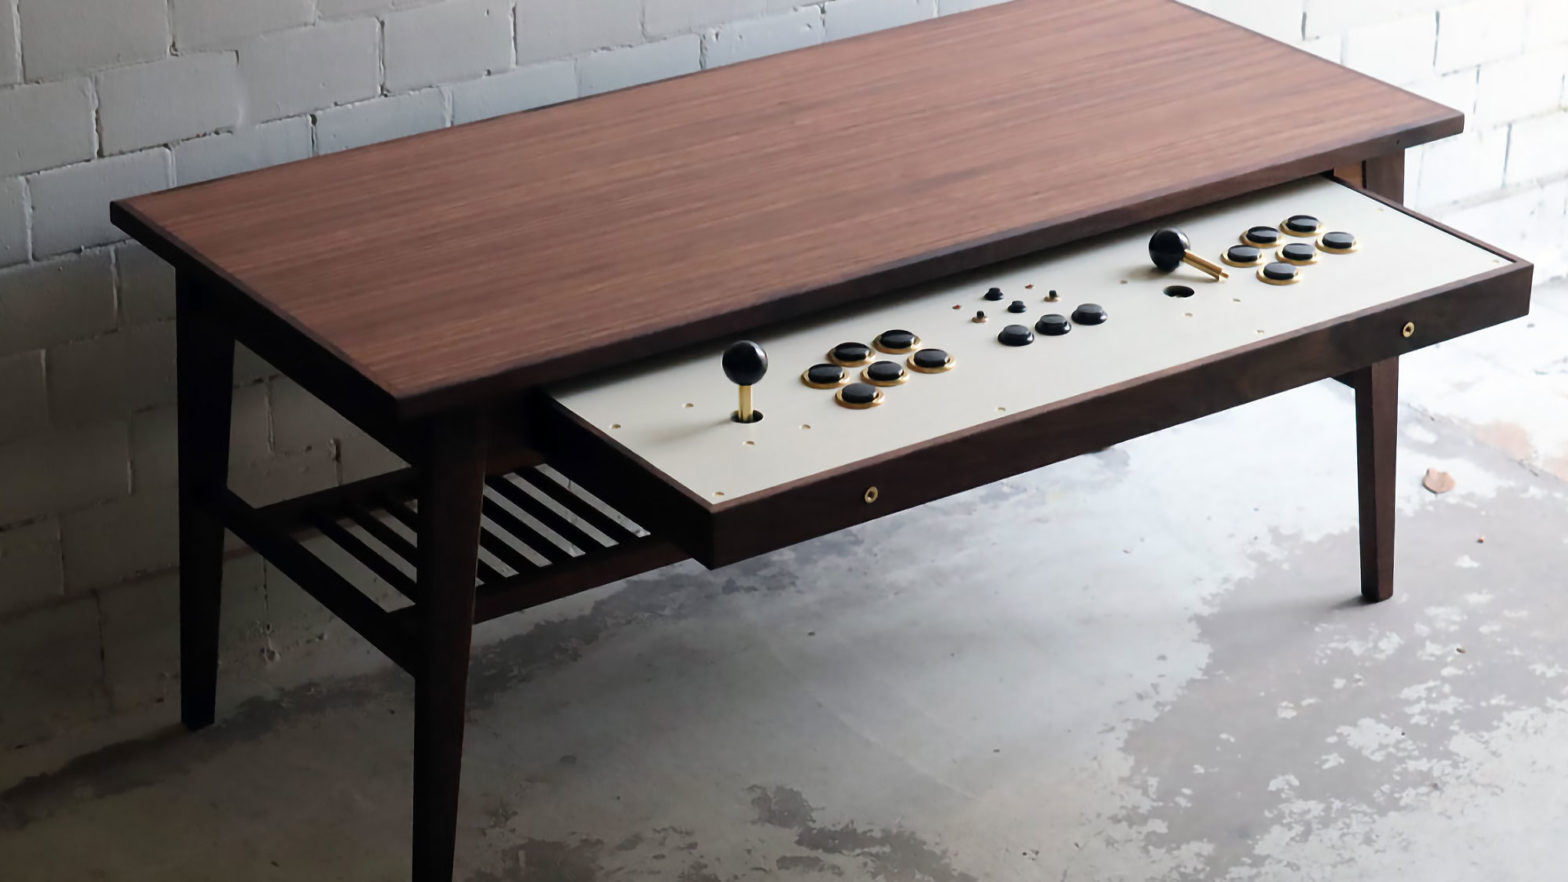 Coffee Table with Arcade Controllers